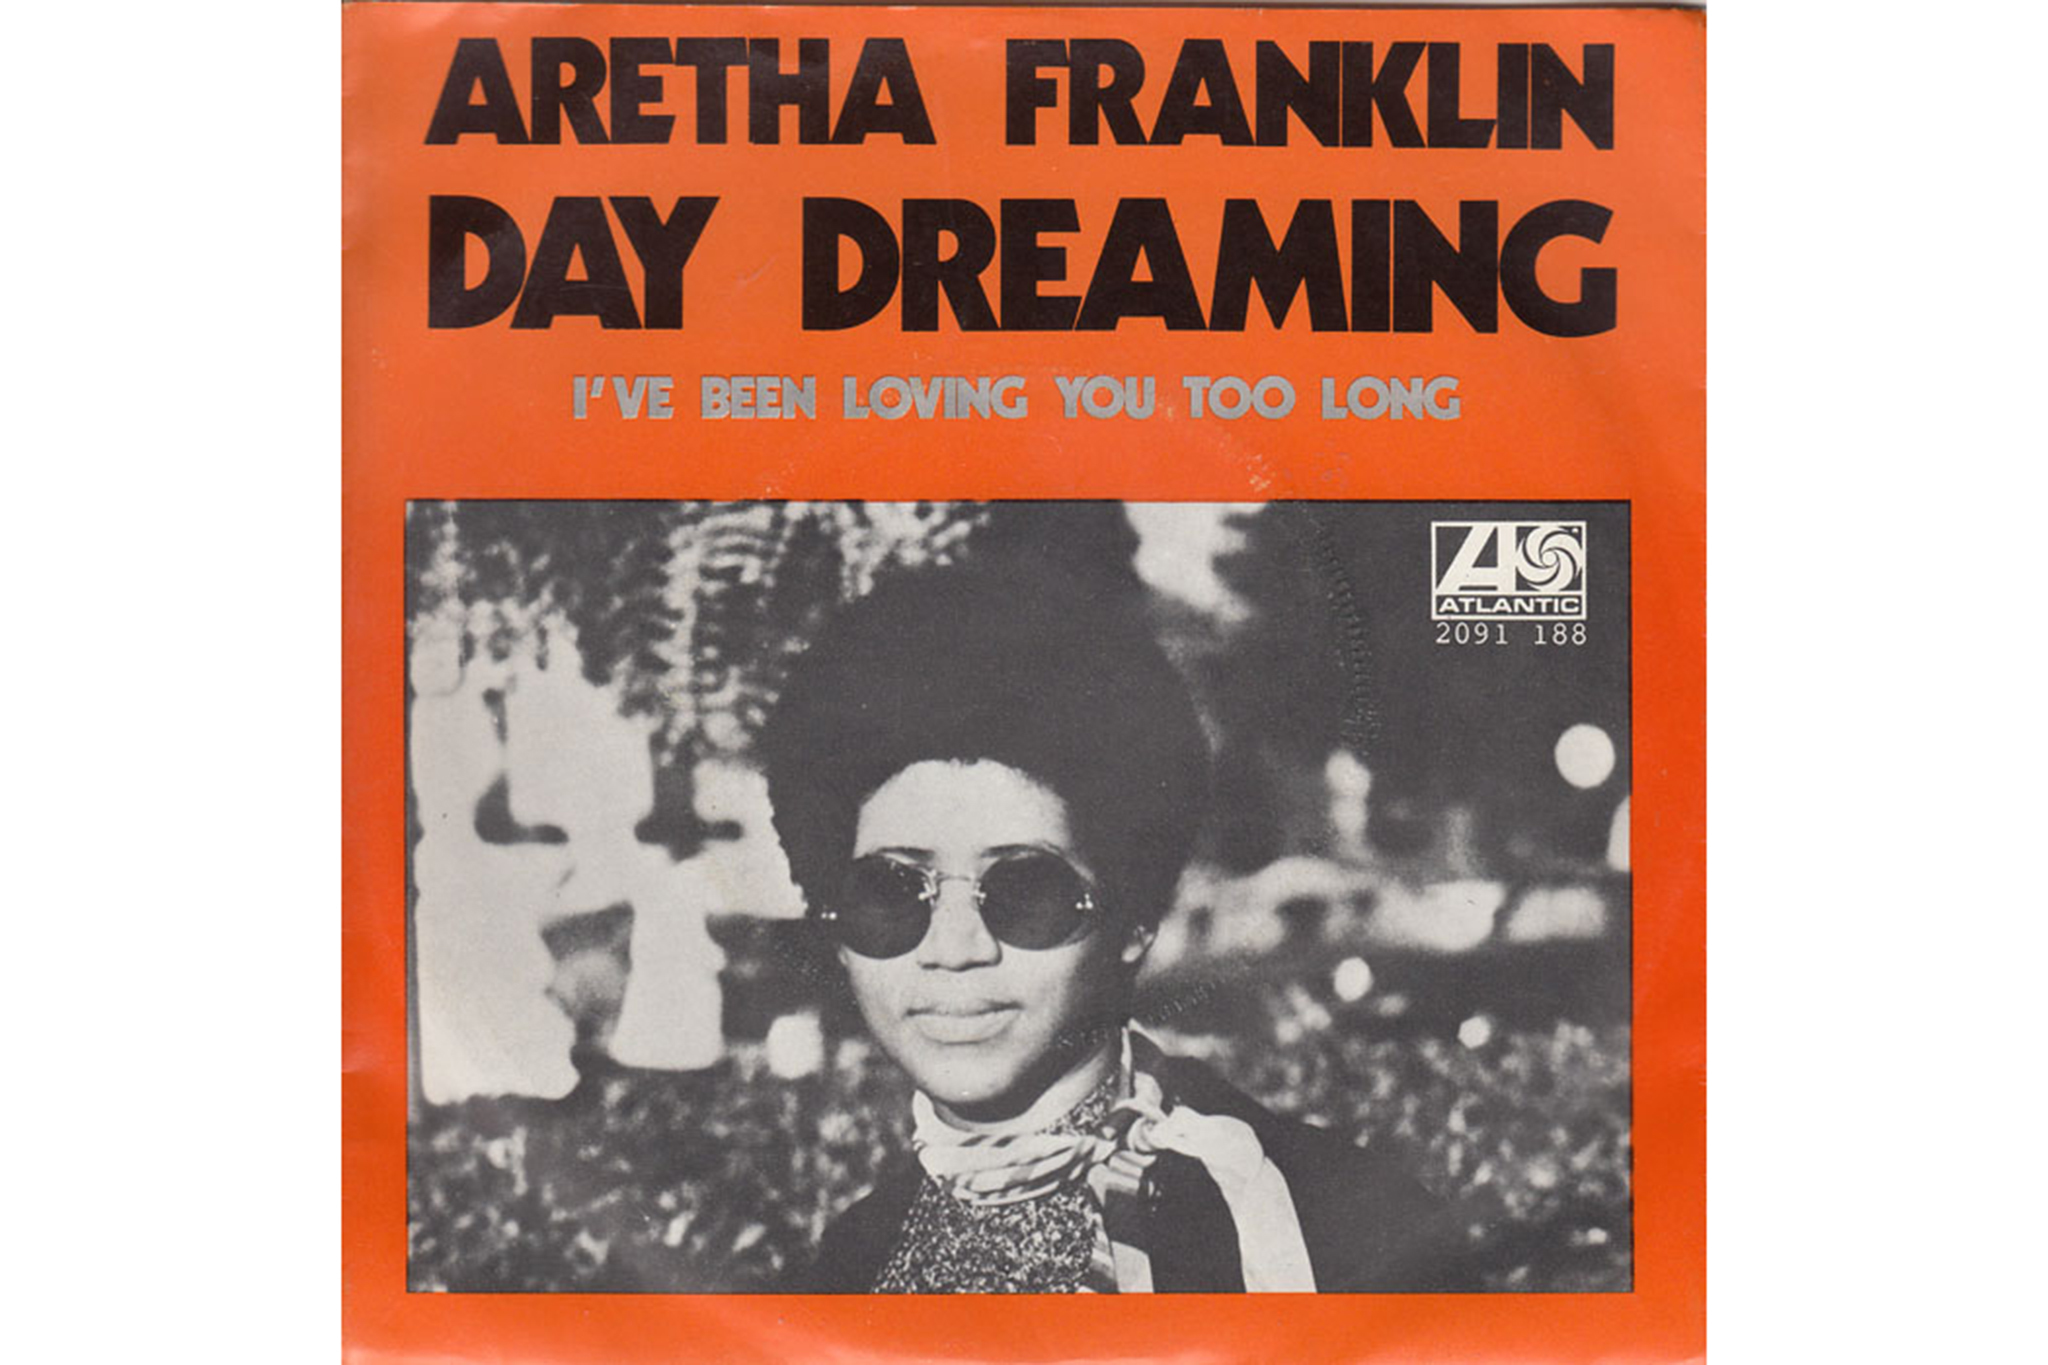 """Aretha Franklin's """"Day Dreaming"""" album cover"""